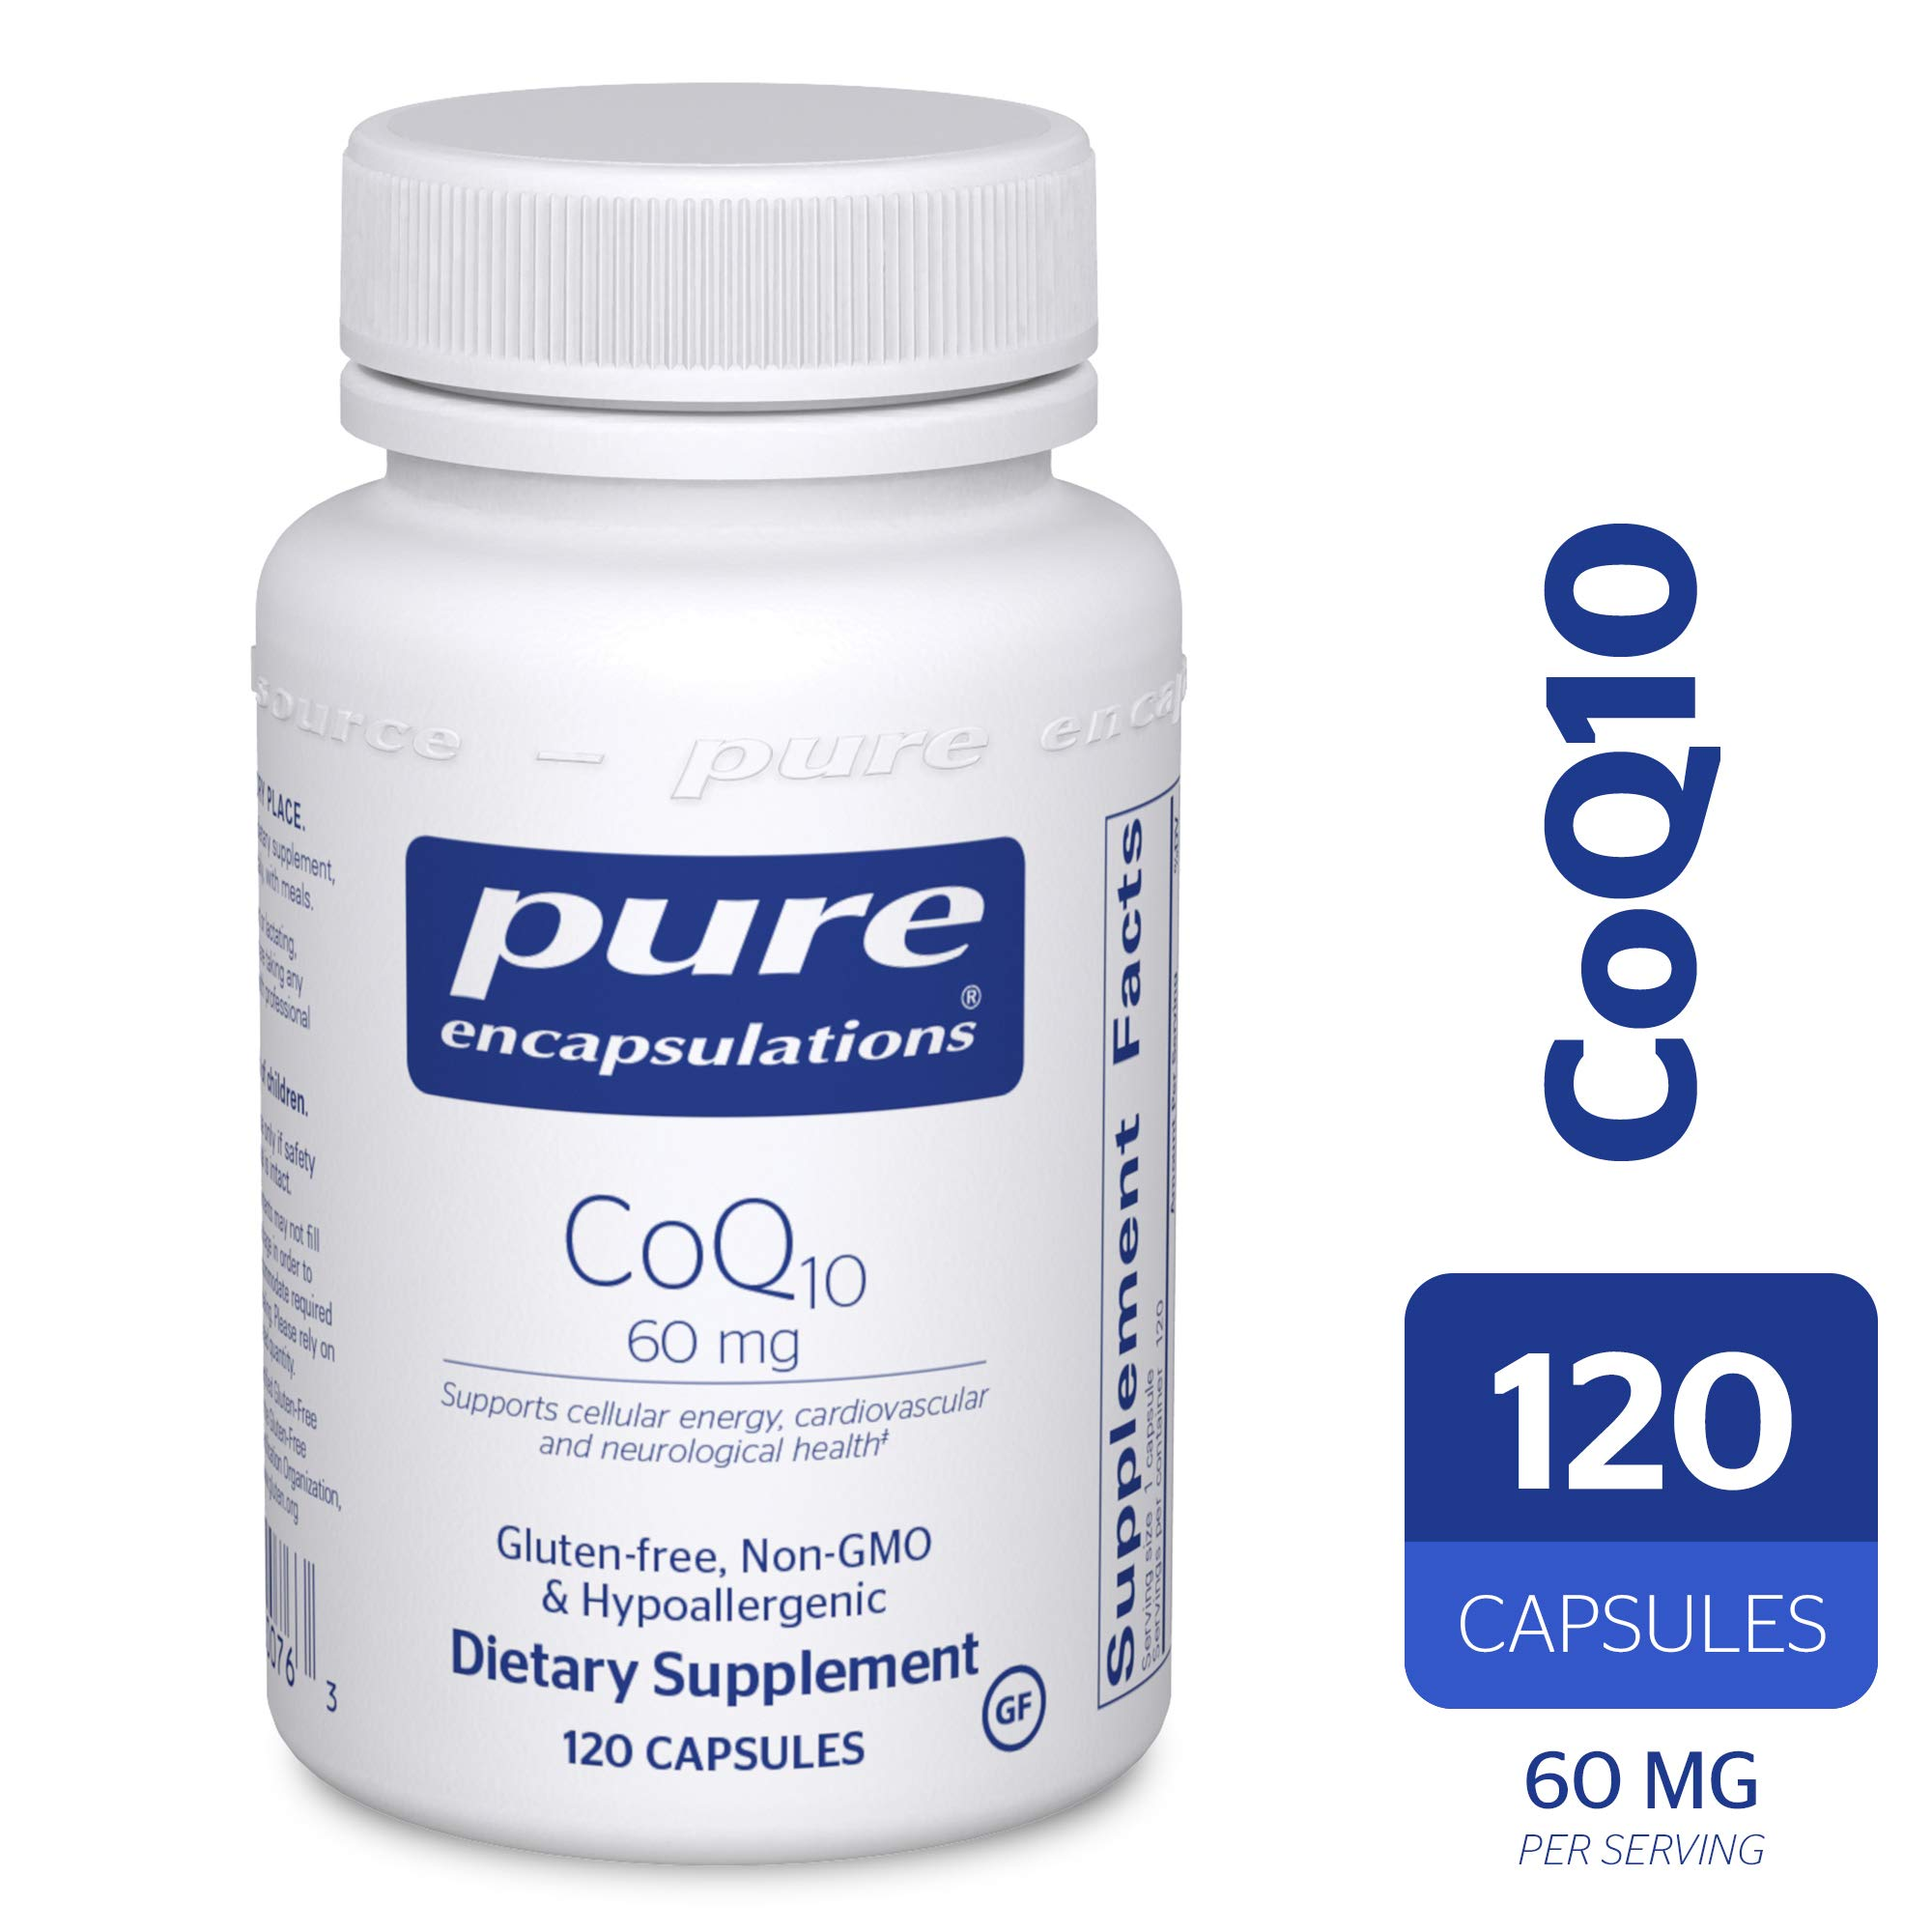 Pure Encapsulations - CoQ10 60 mg - Hypoallergenic Coenzyme Q10 Supplement - 120 Capsules by Pure Encapsulations (Image #1)